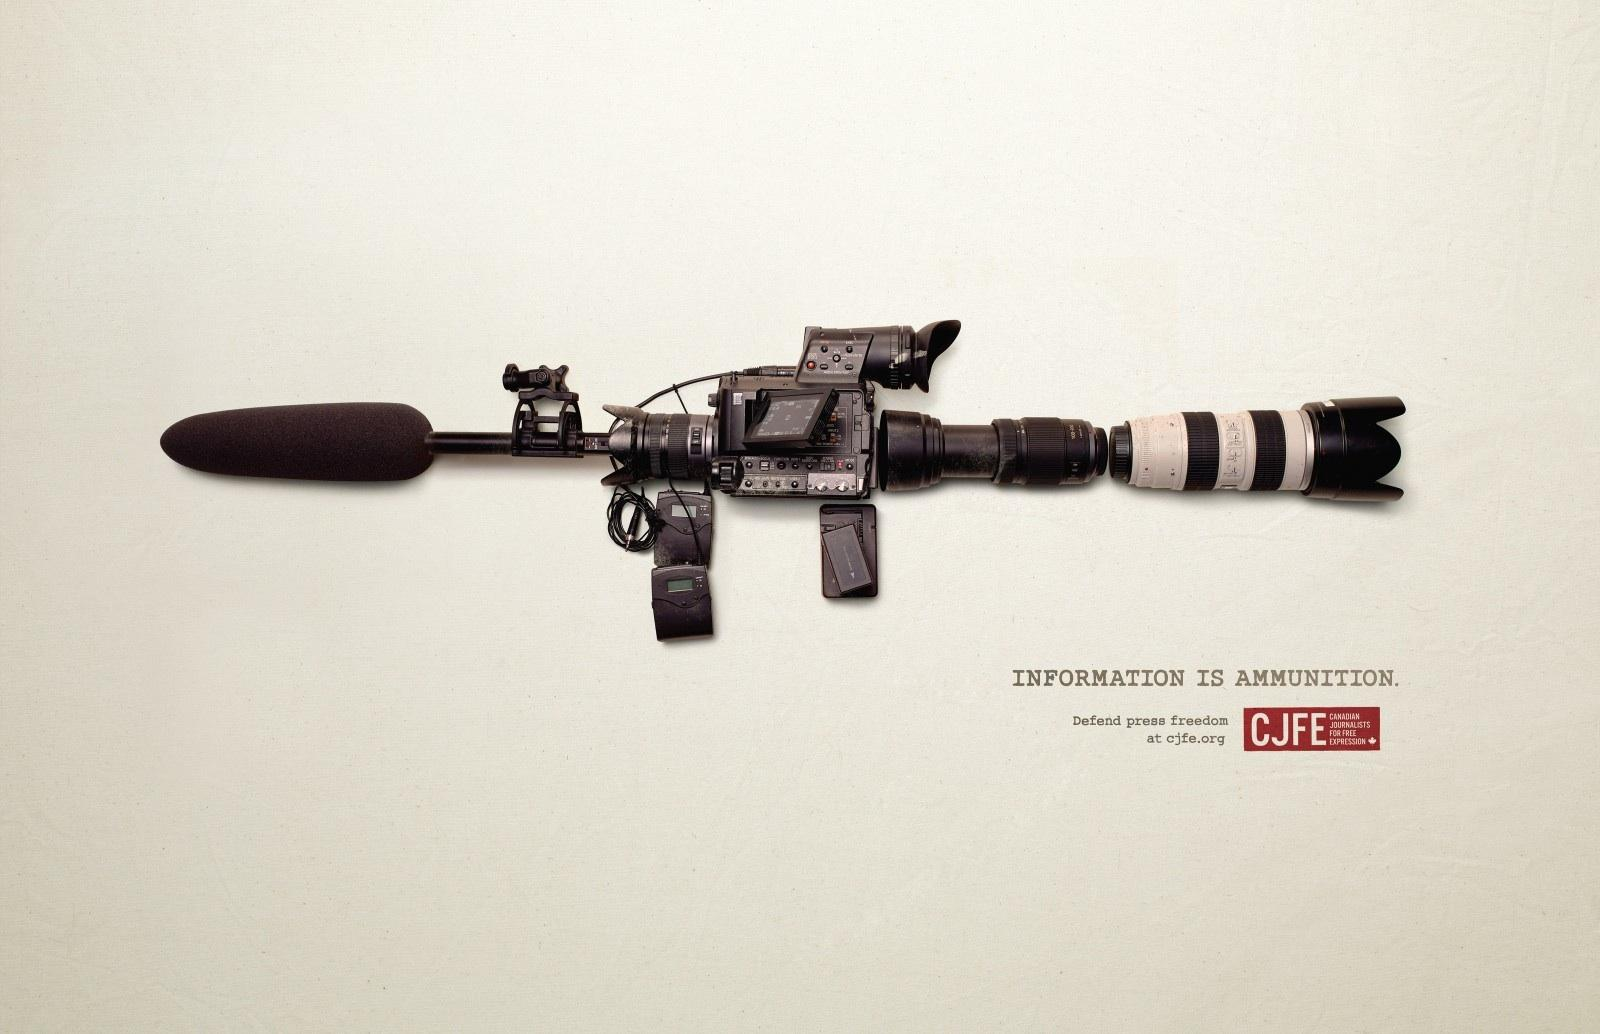 Canadian Journalists for Free Expression Print Ad -  Defend press freedom, 3